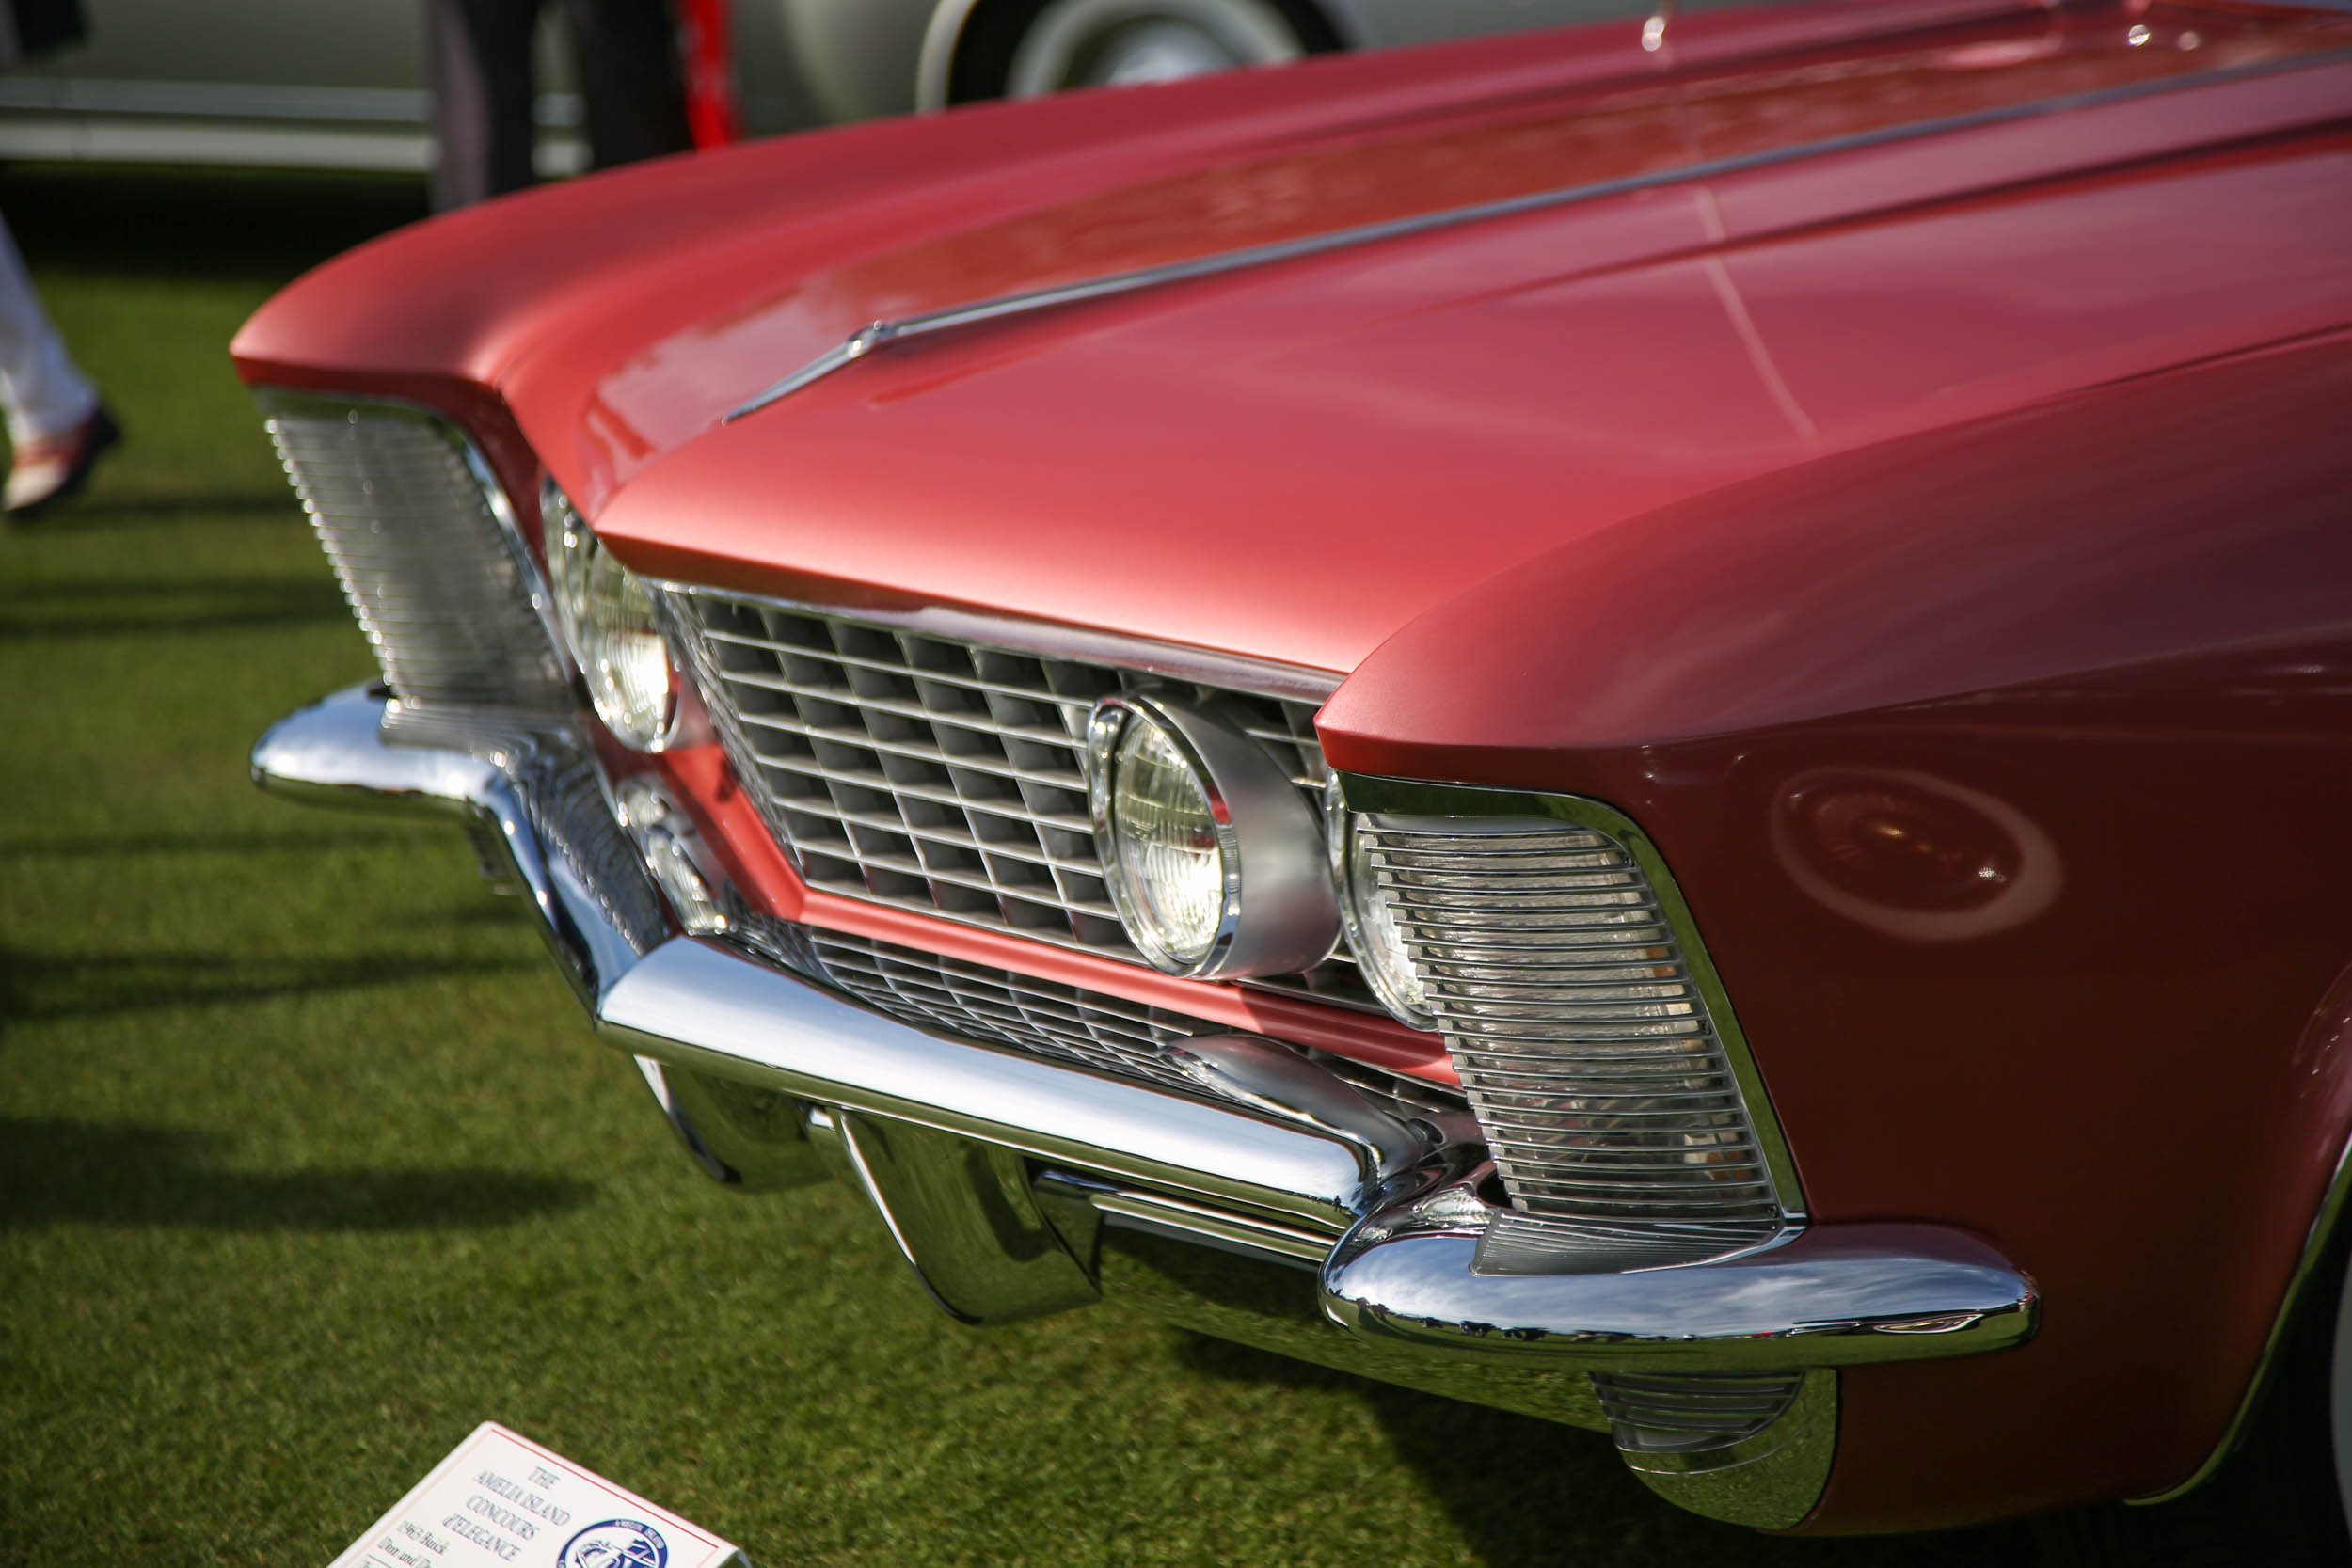 Buick at the 2018 Amelia Island concours